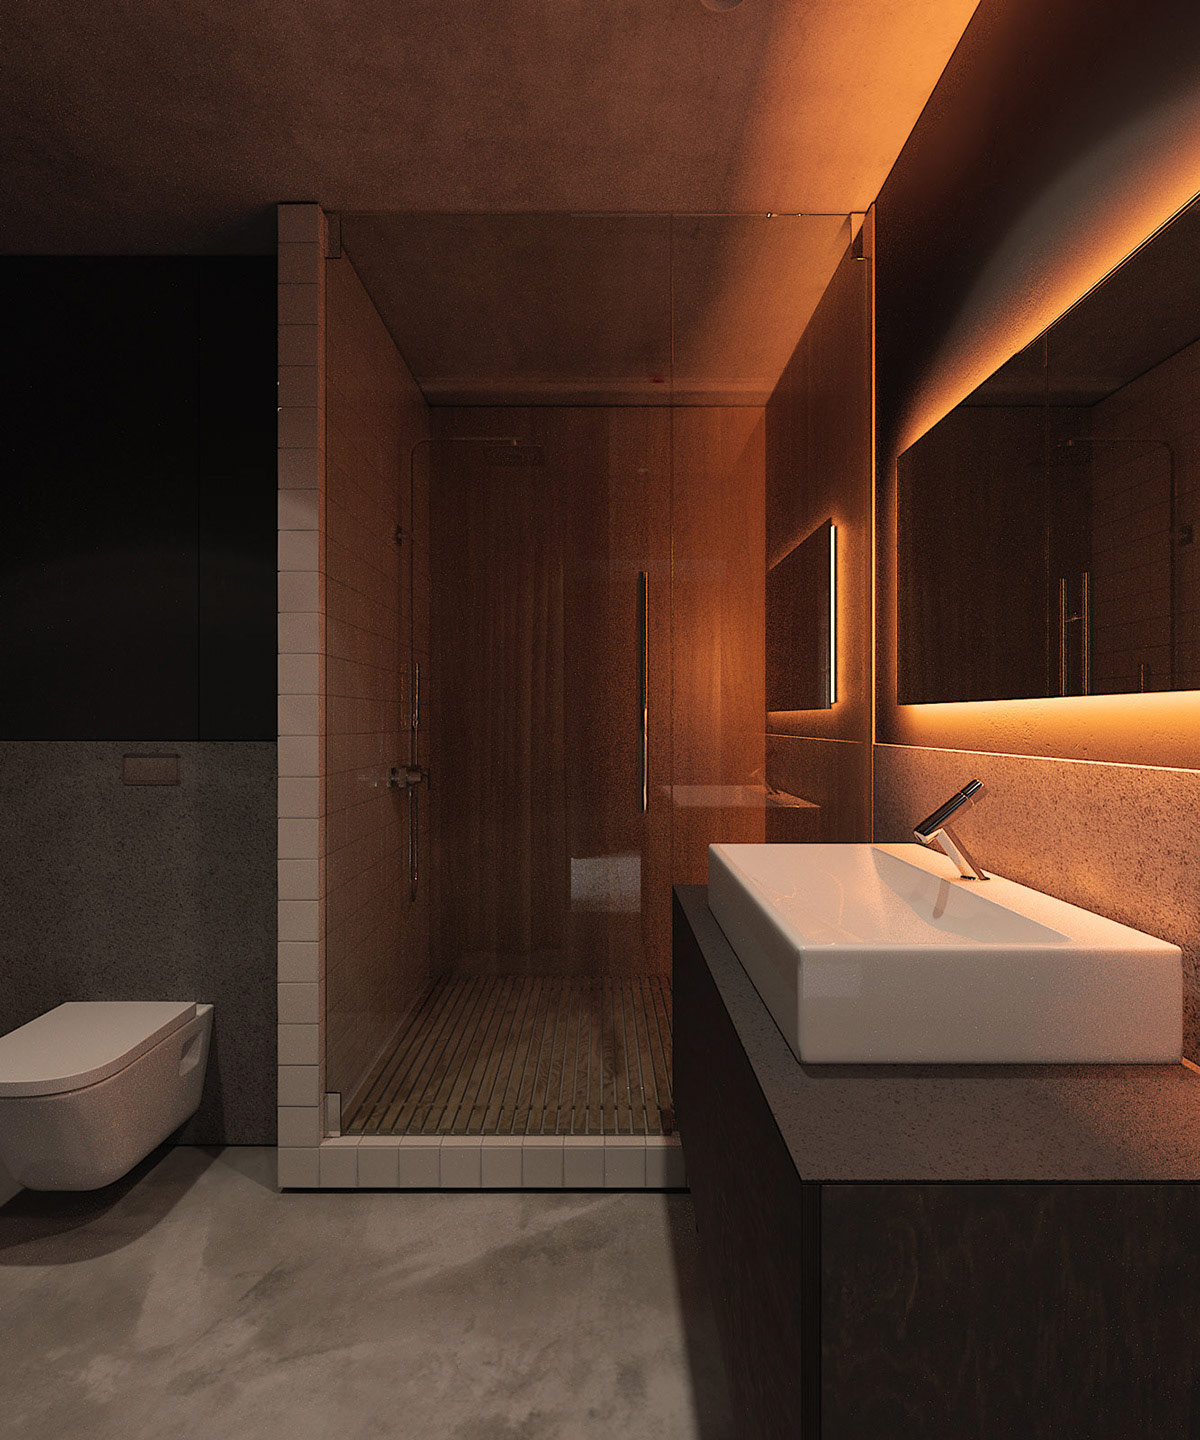 modern-bathroom-design-600x720.jpg